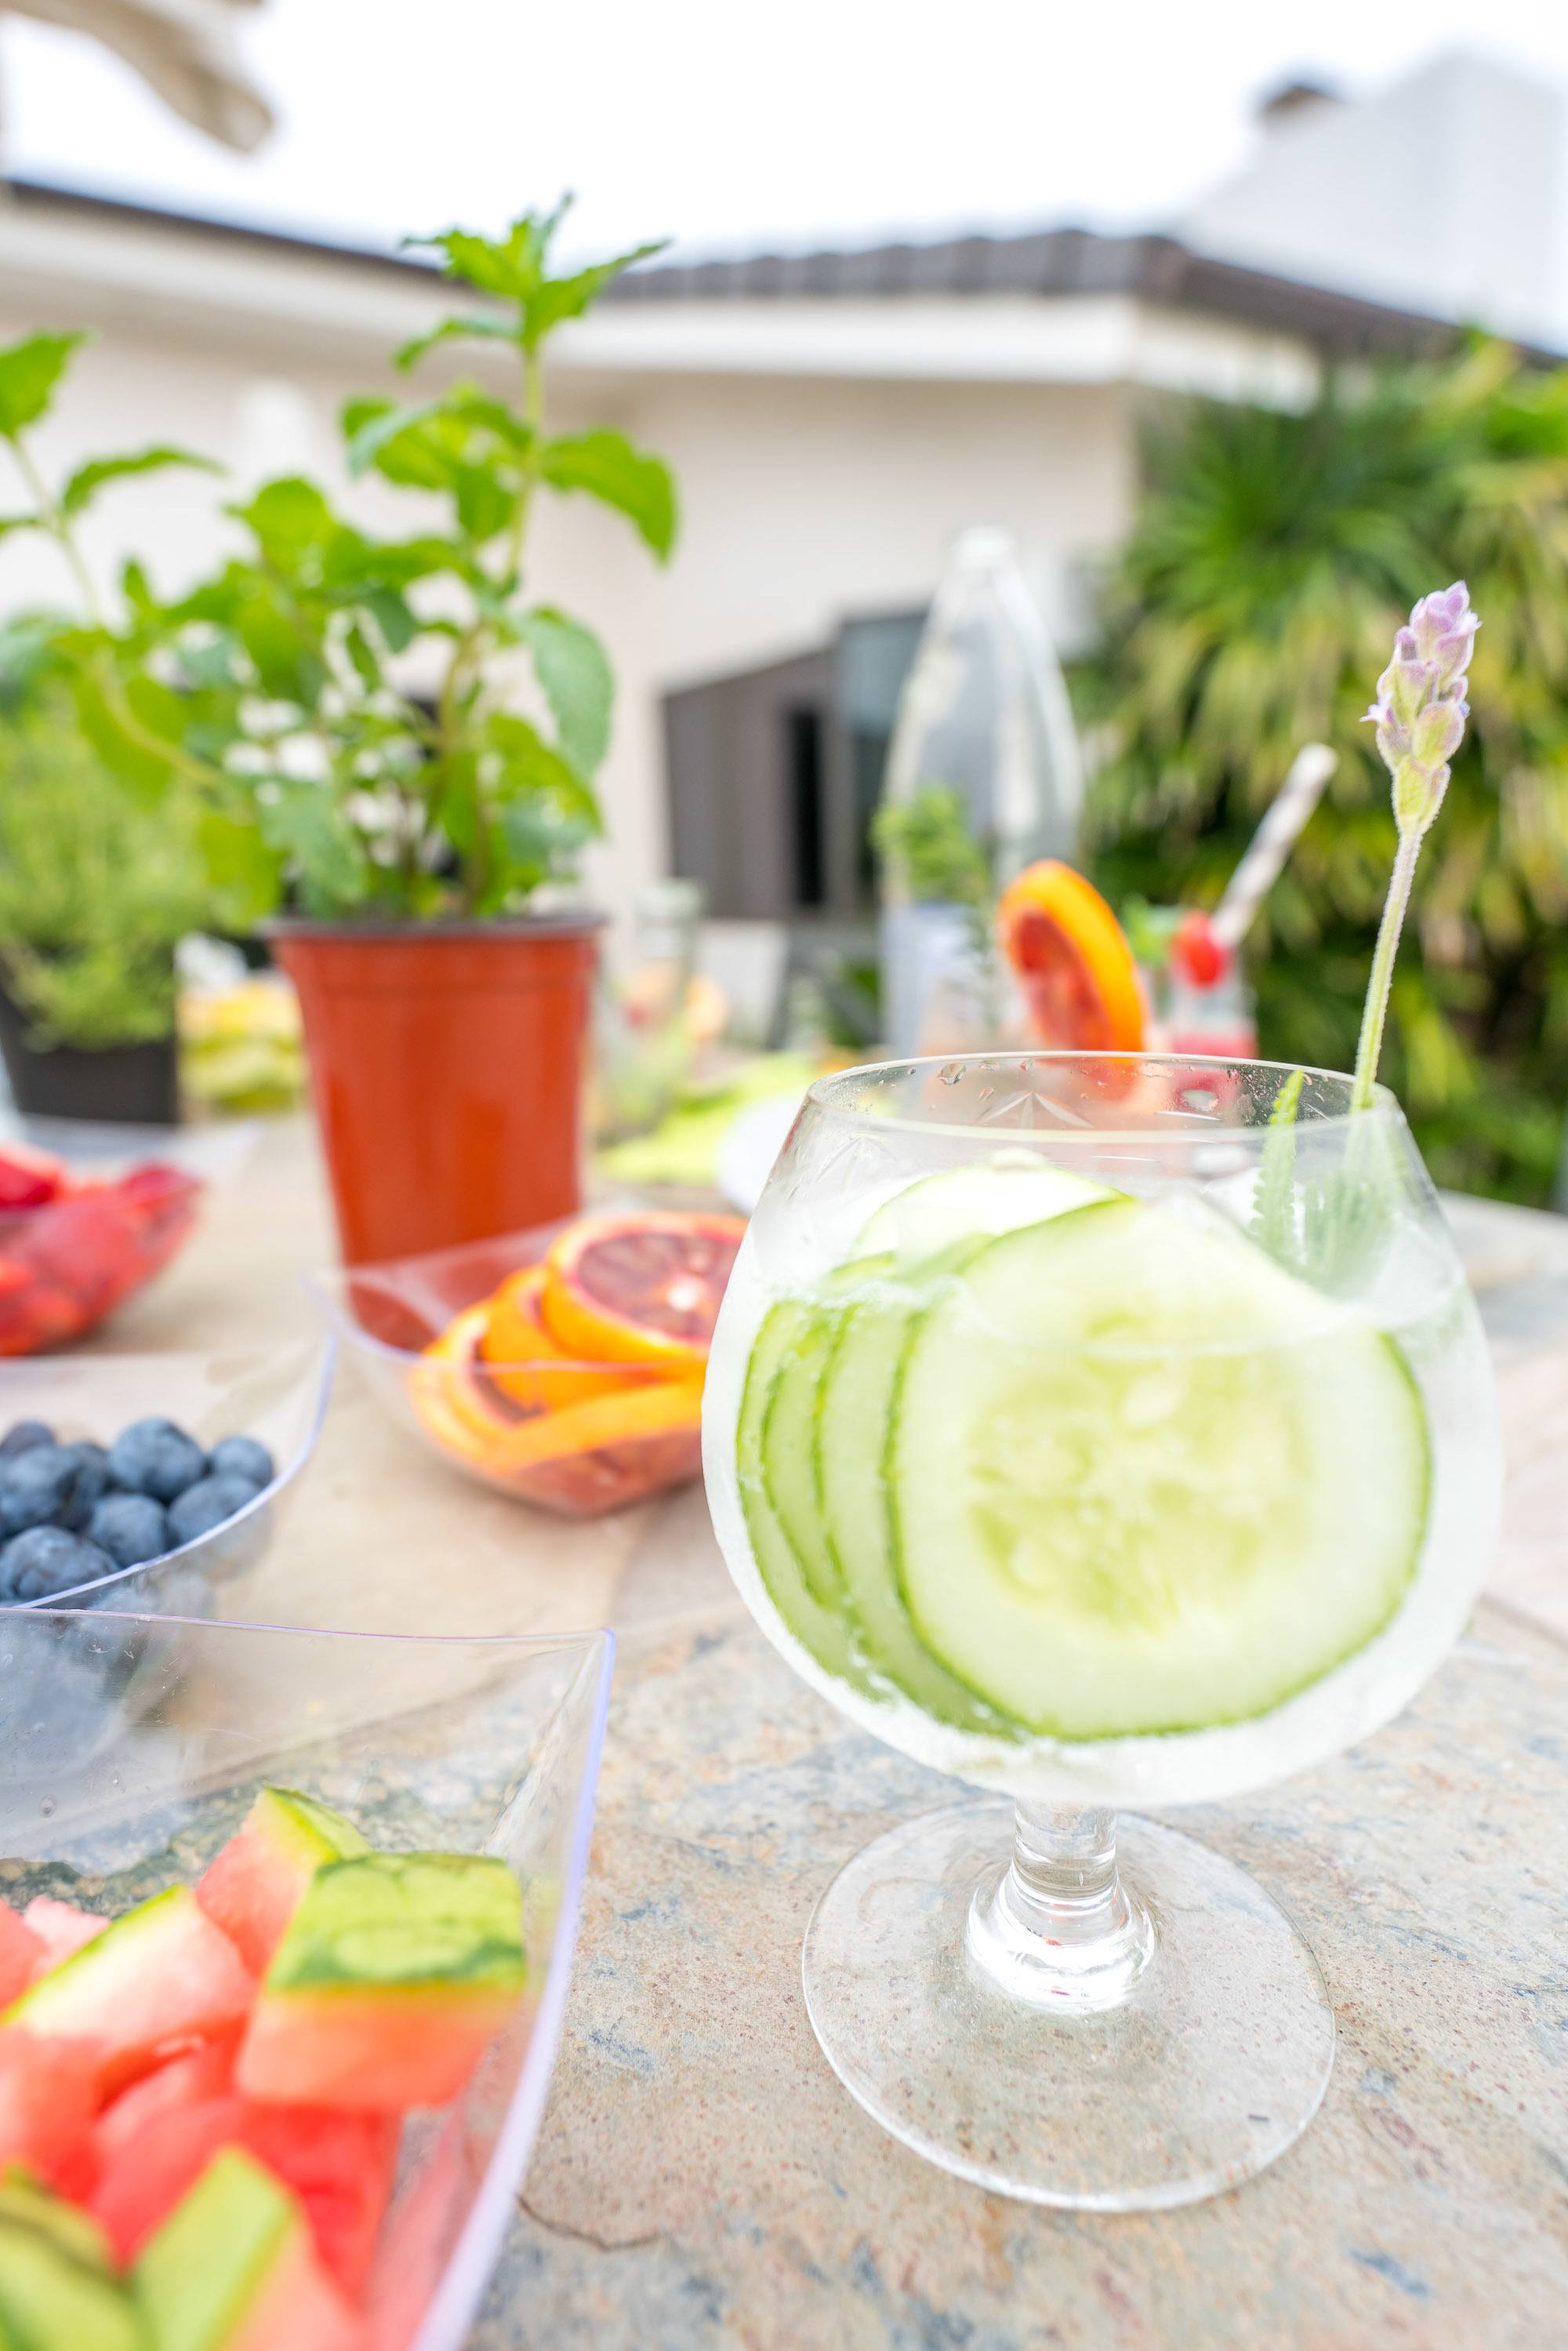 Lavender and cucumber sparkling water recipe.